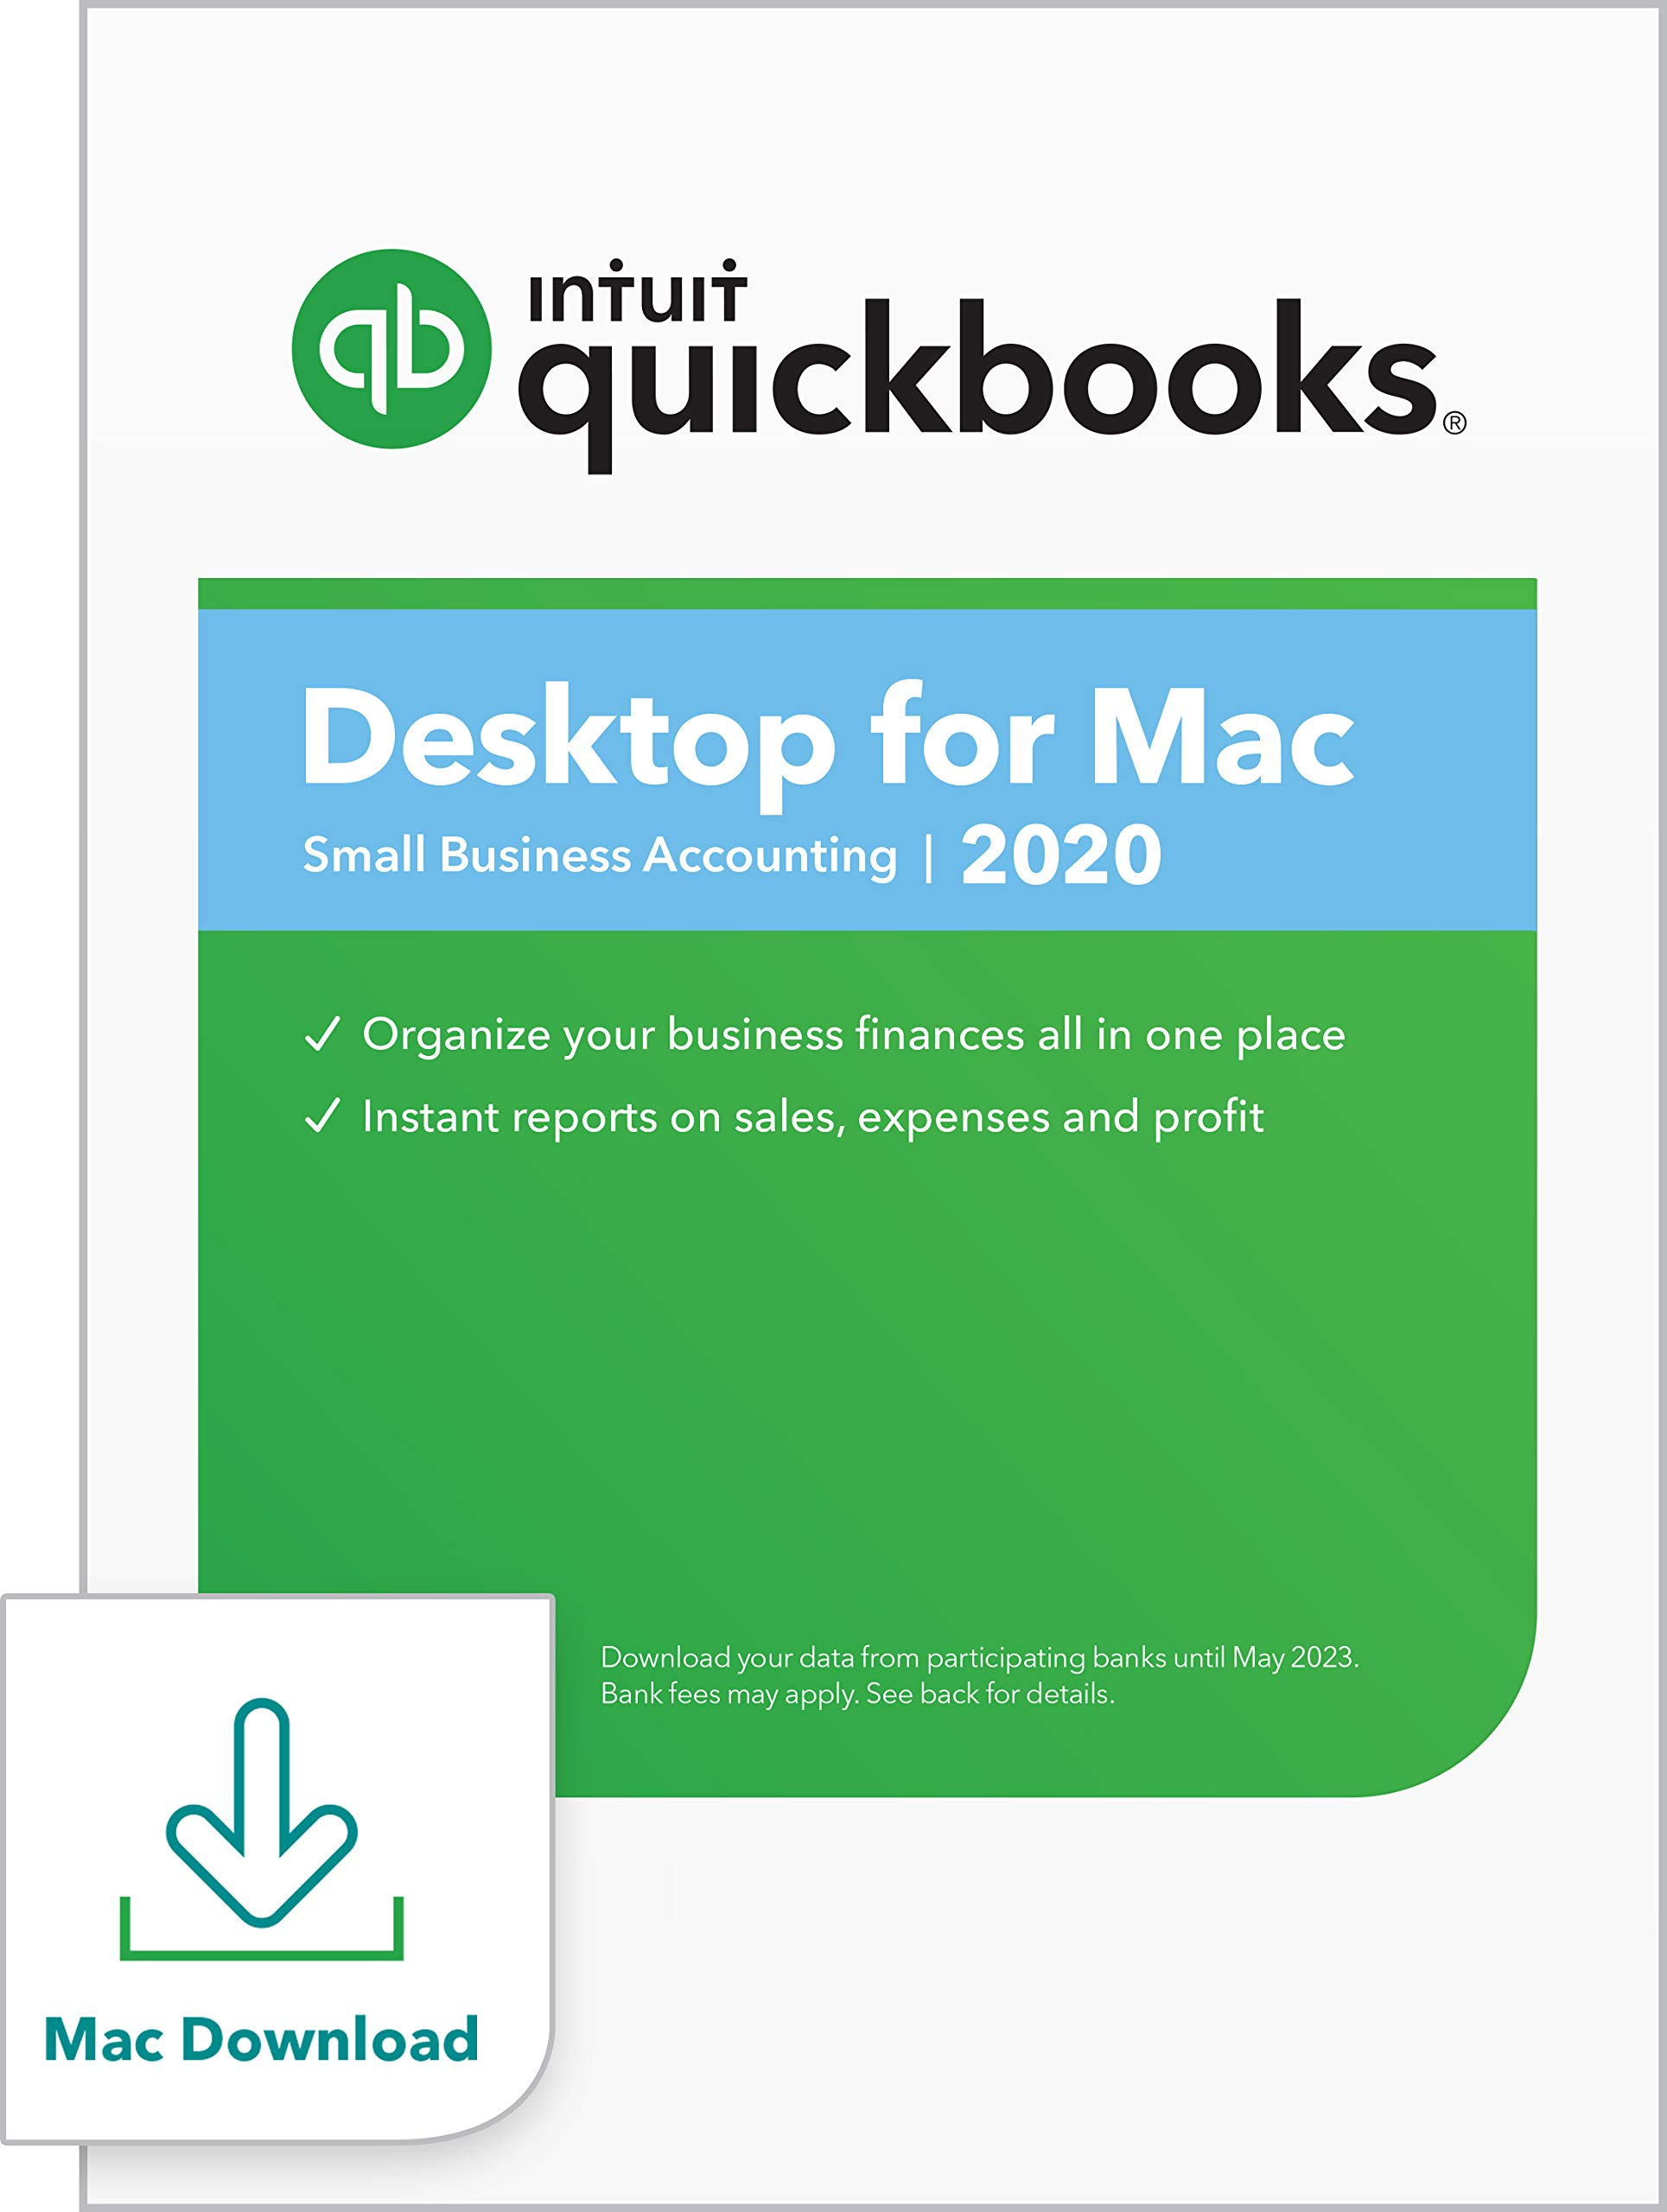 QuickBooks Desktop  for Mac 2020  Accounting Software for Small Business with  Shortcut Guide [Mac Download]